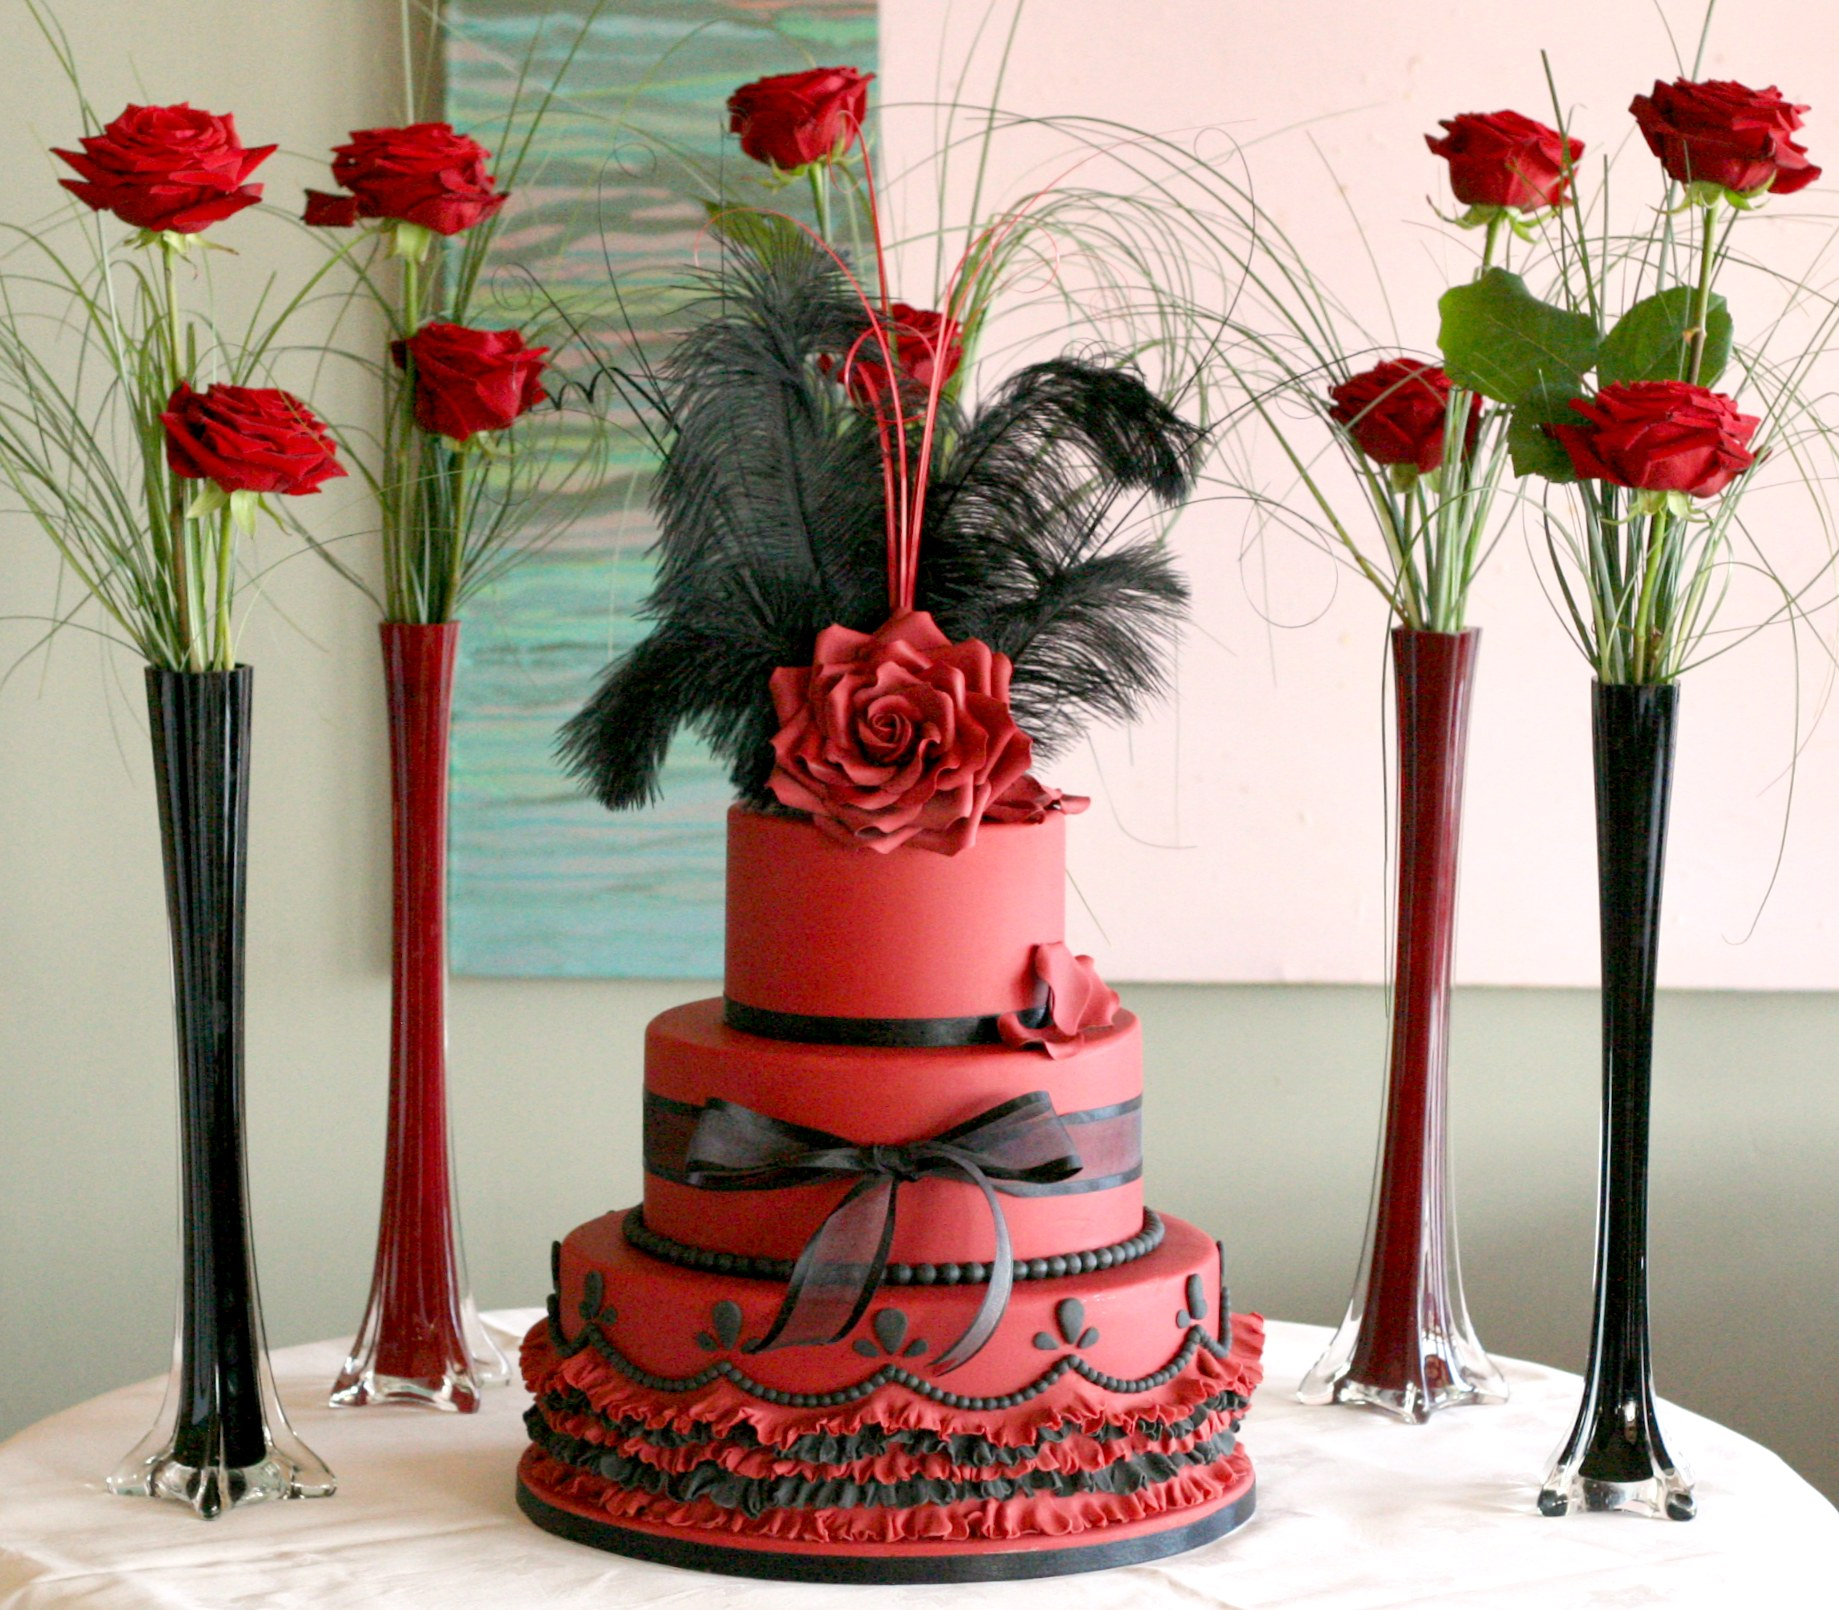 3 Tier Red & Black wedding cake